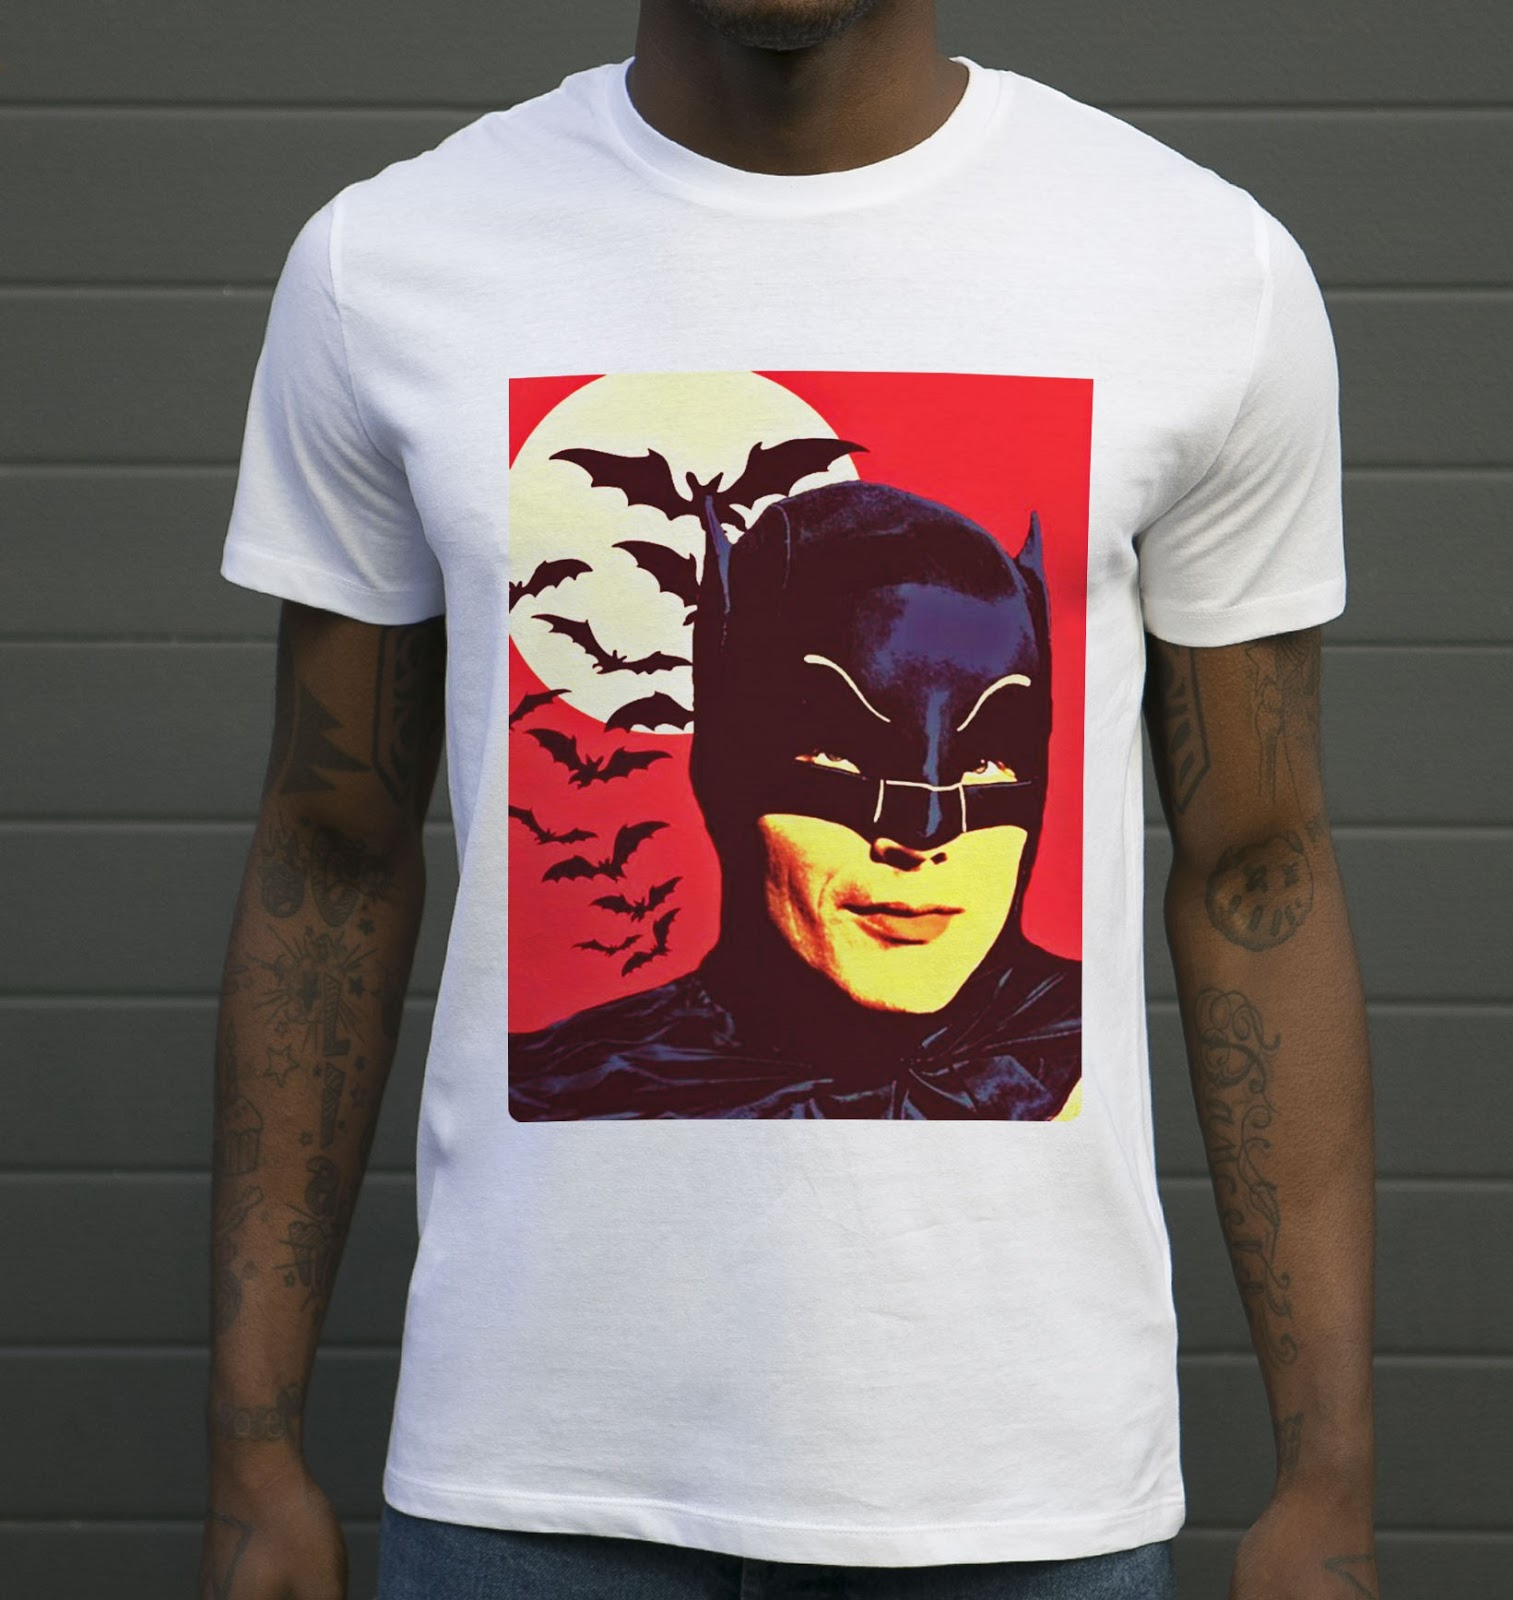 https://grafitee.co/tshirts/adam-west-batman-t-shirt